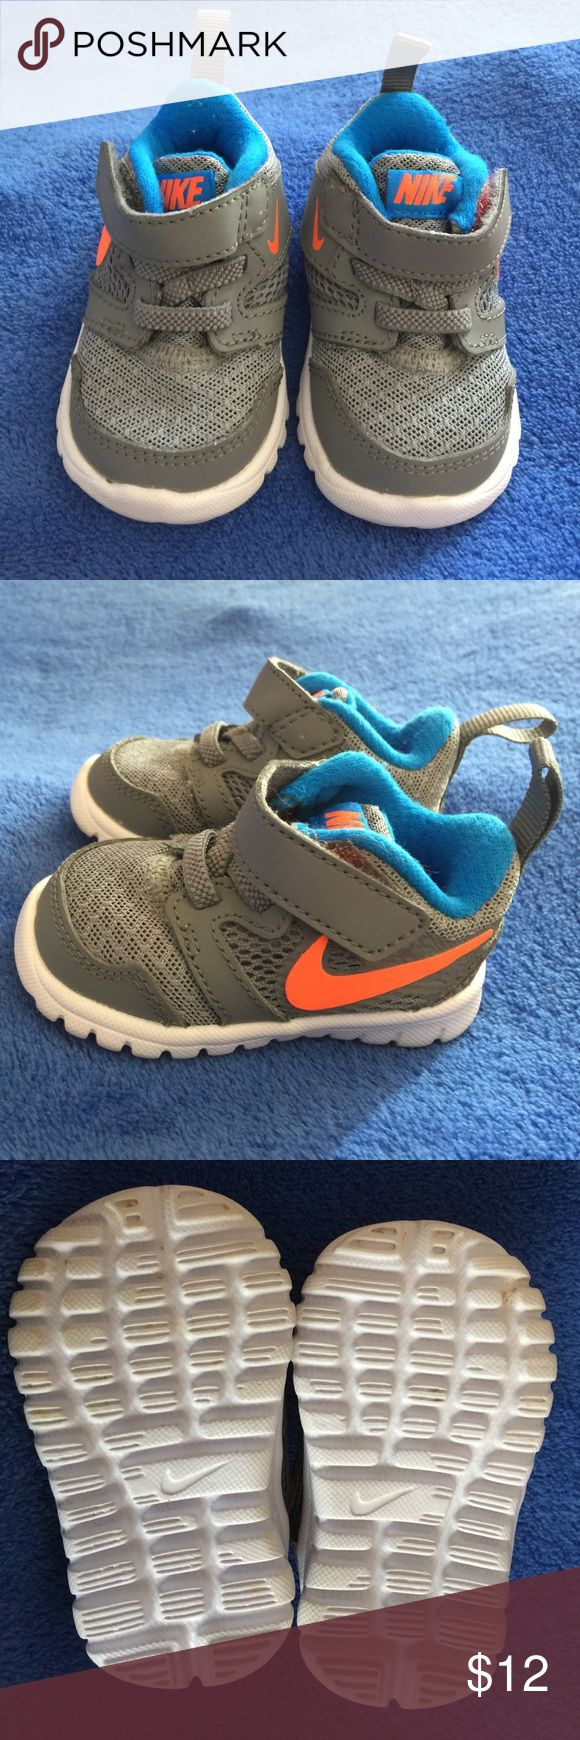 Infant boys Nike shoes size 2! This is a pair of infant boys Nike shoes size 2. They have been worn on a few times and are in great shape. If you have any questions please let me know. Thanks! Nike Shoes Baby & Walker